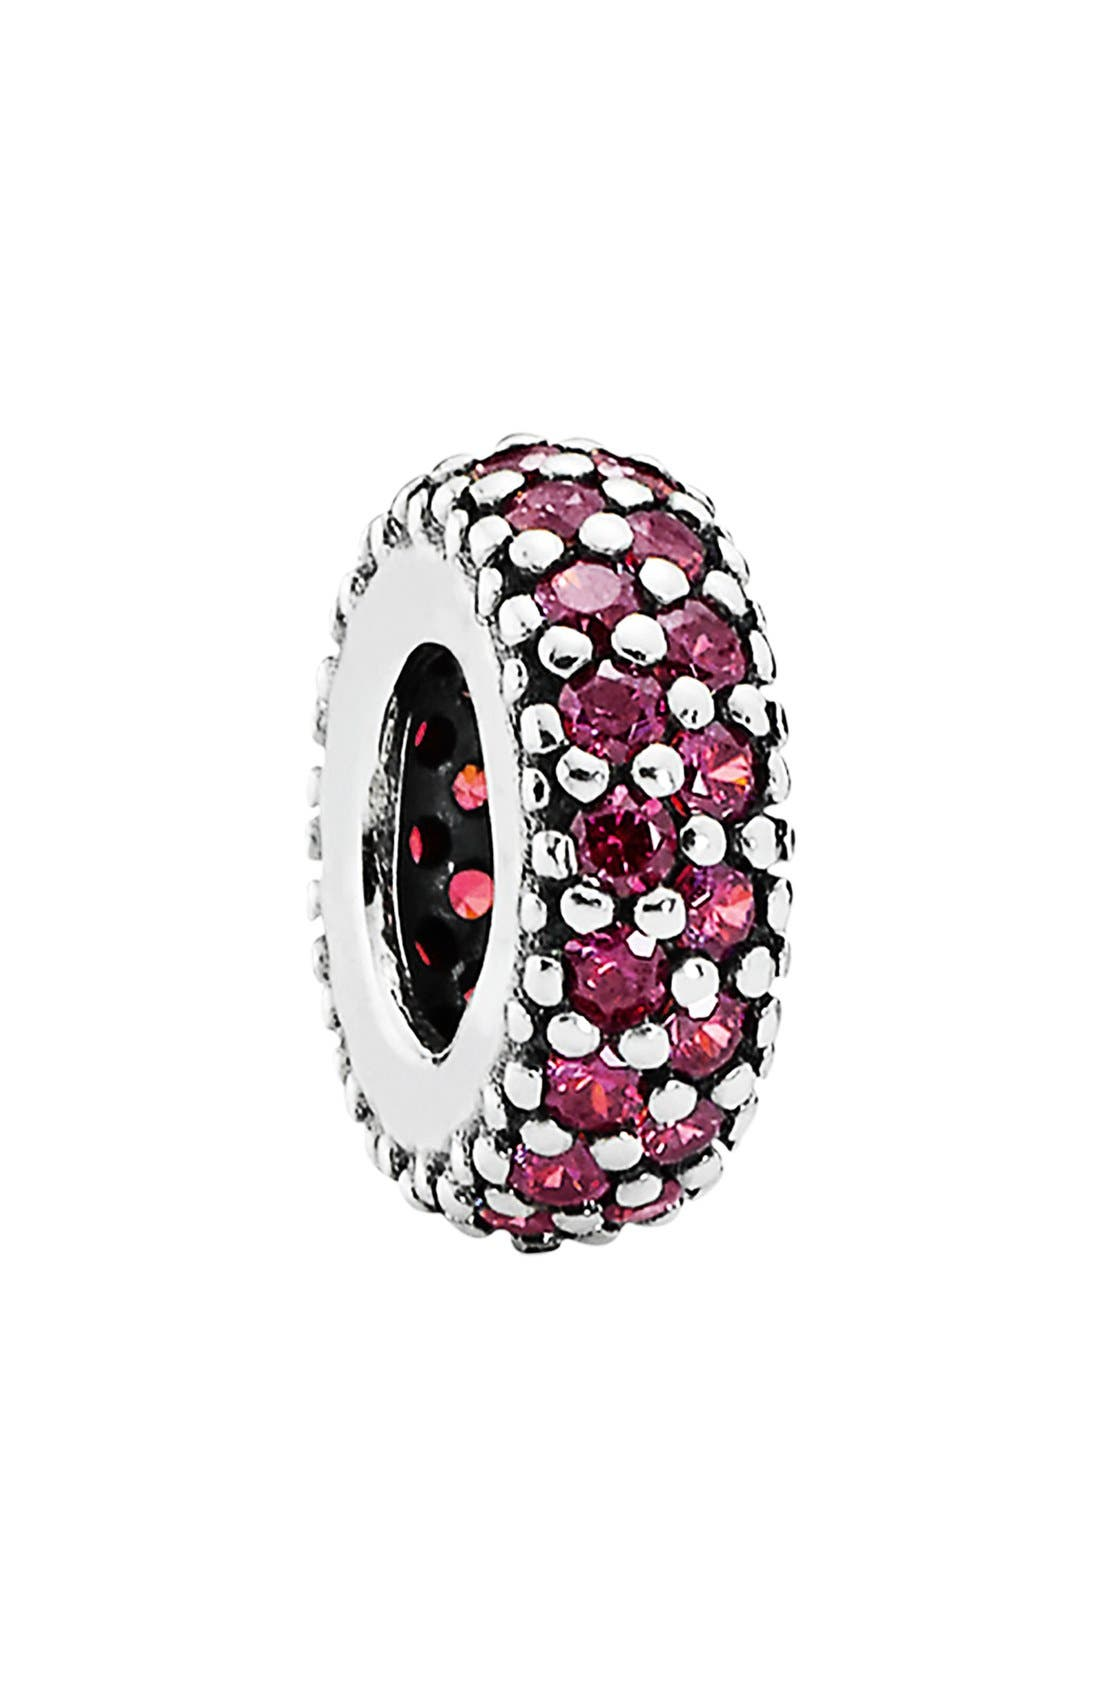 Main Image - PANDORA 'Inspiration Within' Spacer Charm